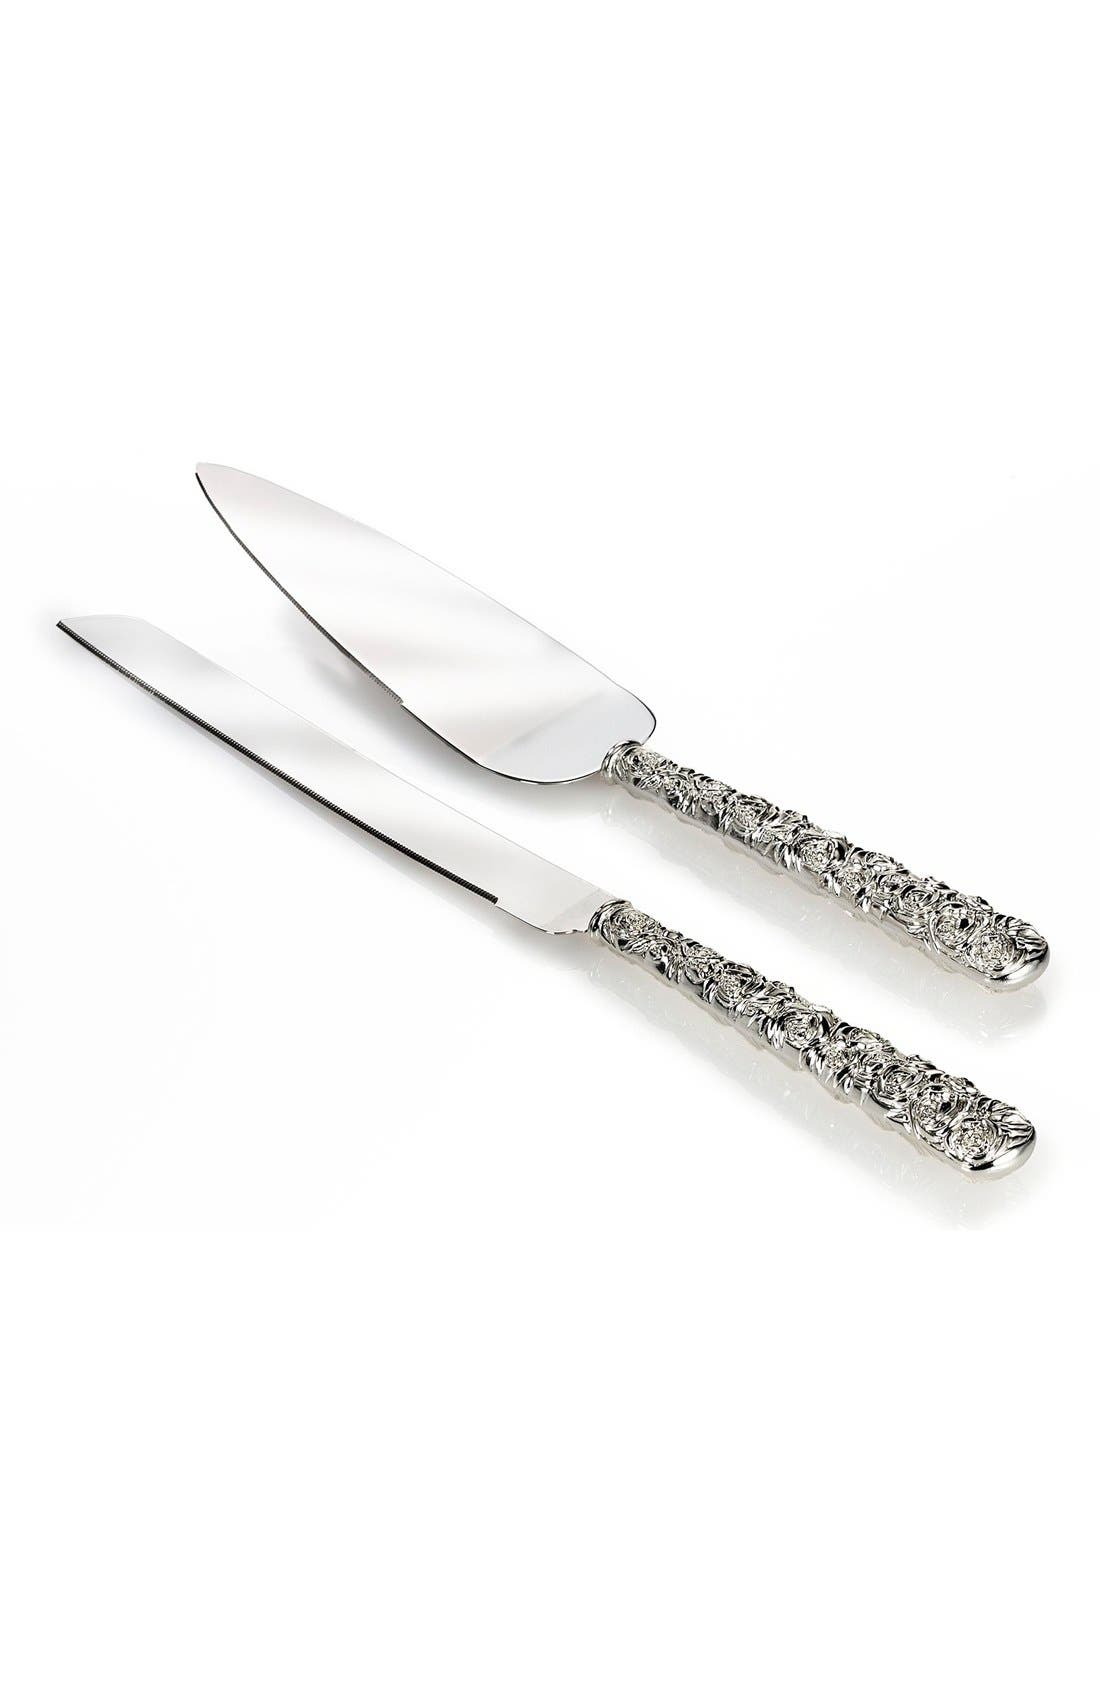 Main Image - Monique LhuillierWaterford 'Sunday Rose' Silverplate 2-Piece Cake Serving Set